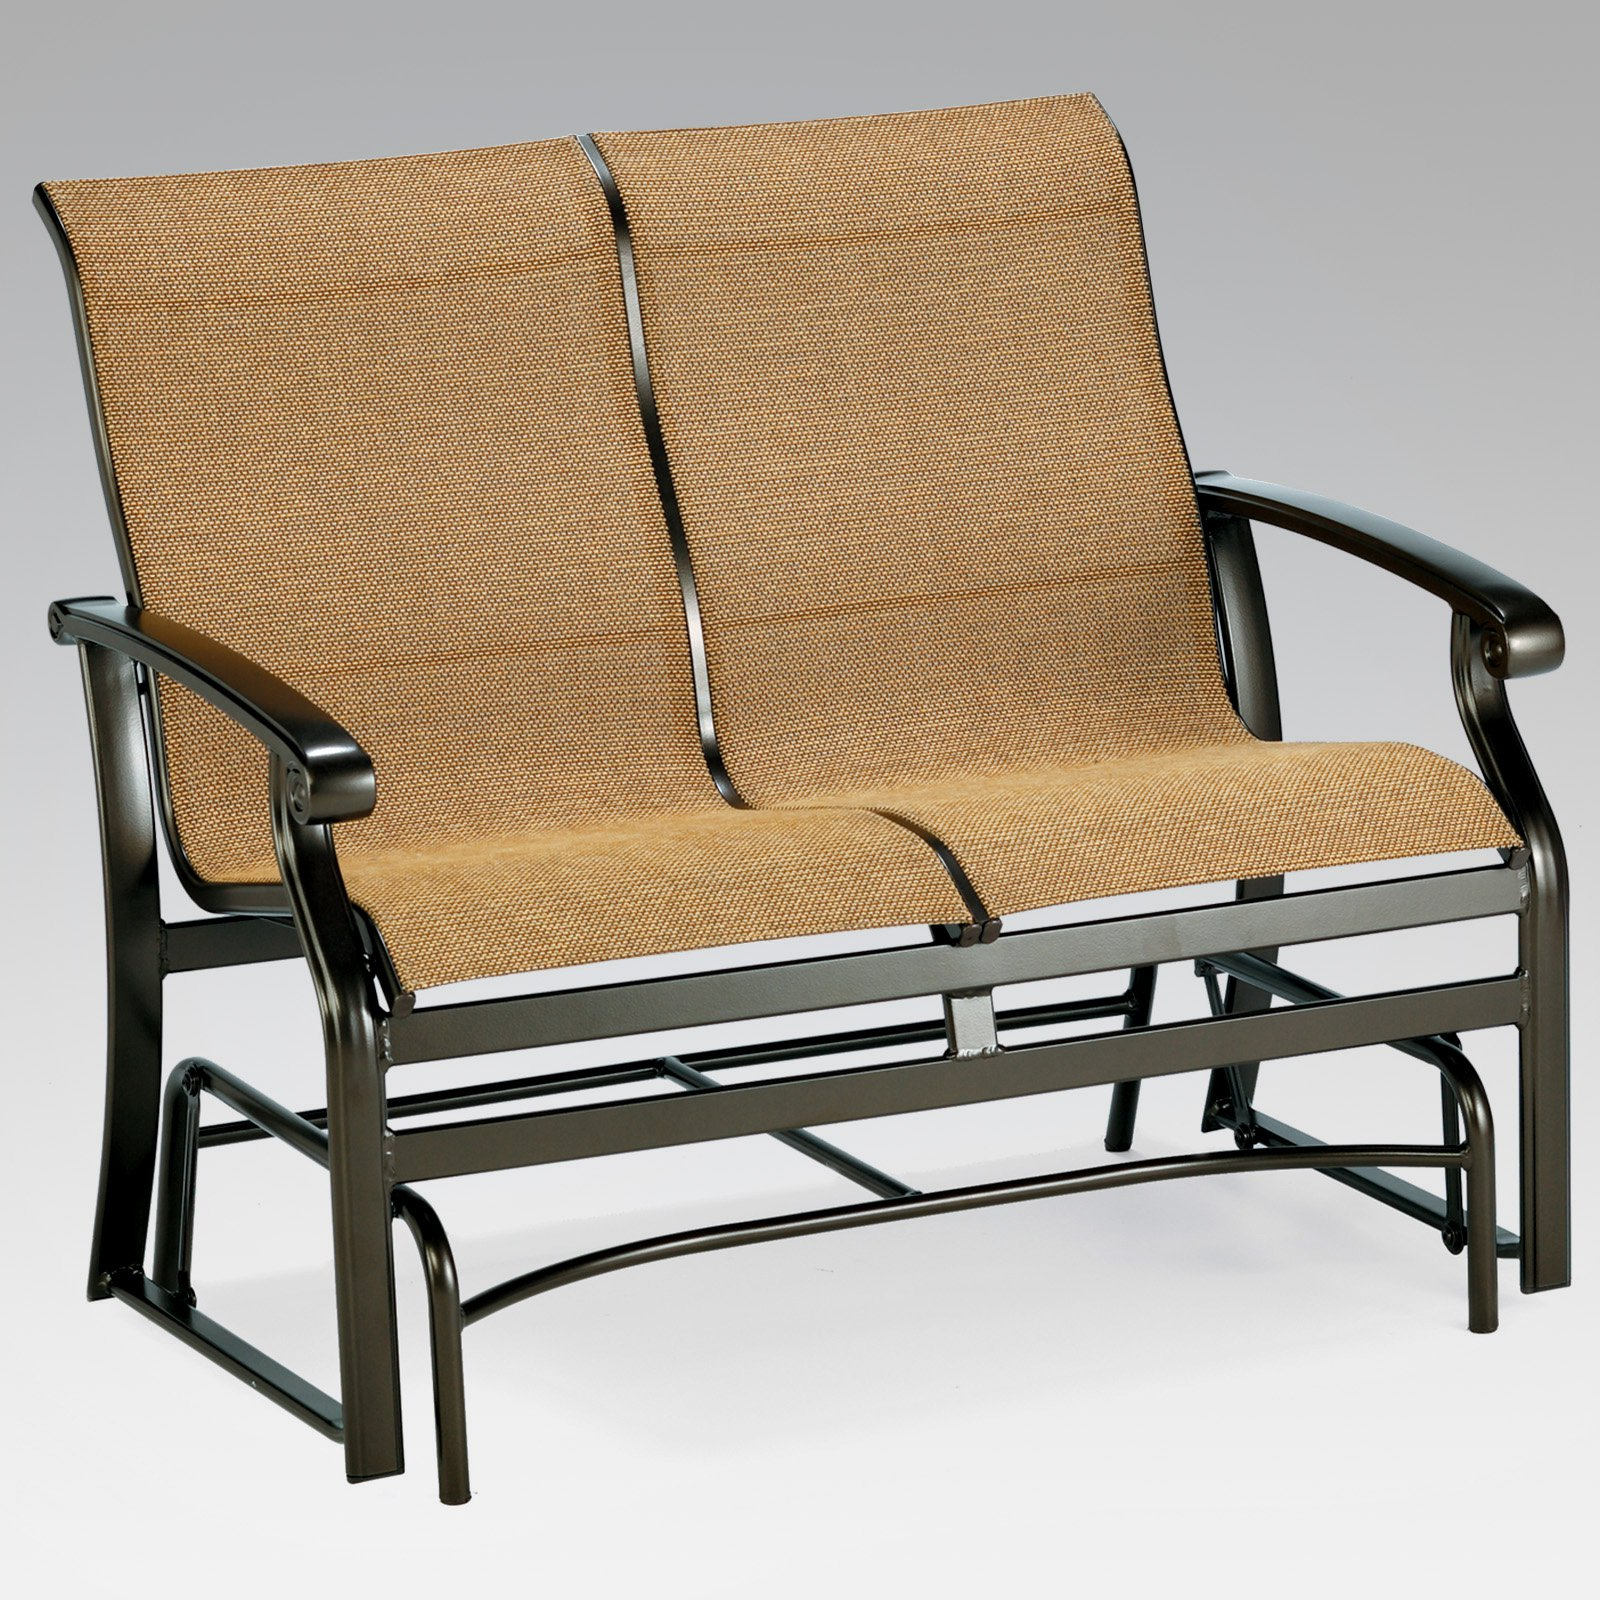 Glider Patio Chairs Patio Furniture Gliders Interior And Exterior Ideas